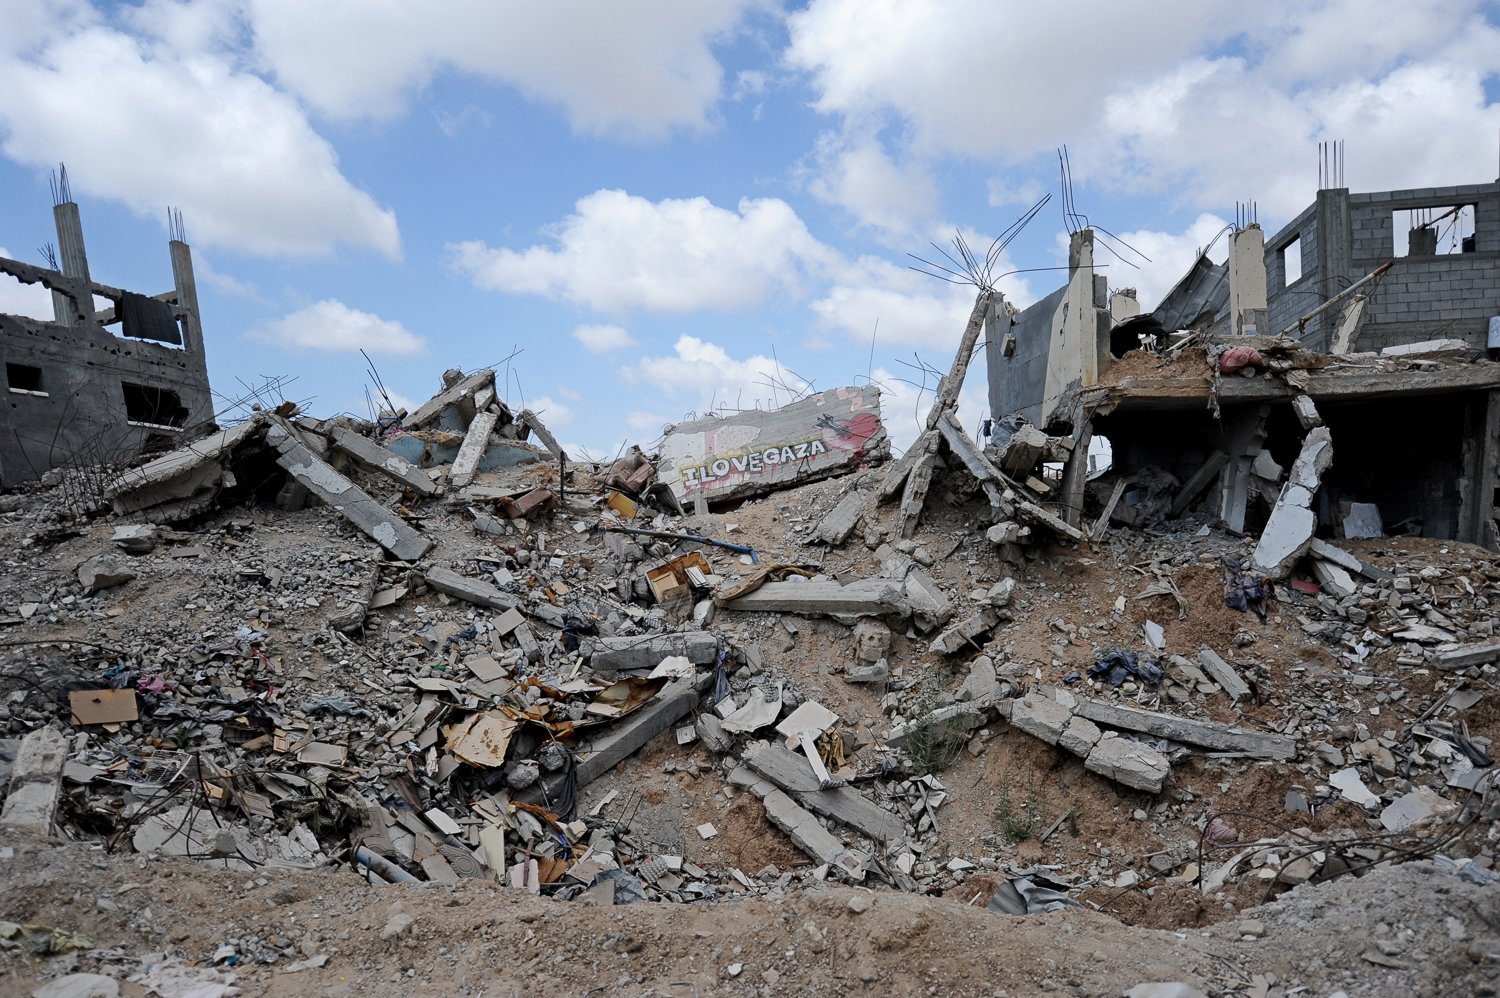 An entire neighbourhood in Shujayea was wiped out in the 2014 Israeli war on Gaza, killing many and displacing thousands. At the current rate of reconstruction materials being allowed into blockaded Gaza, it will take another 66 years to rebuild what was destroyed and meet the population's housing needs. [Karl Schembri/NRC]